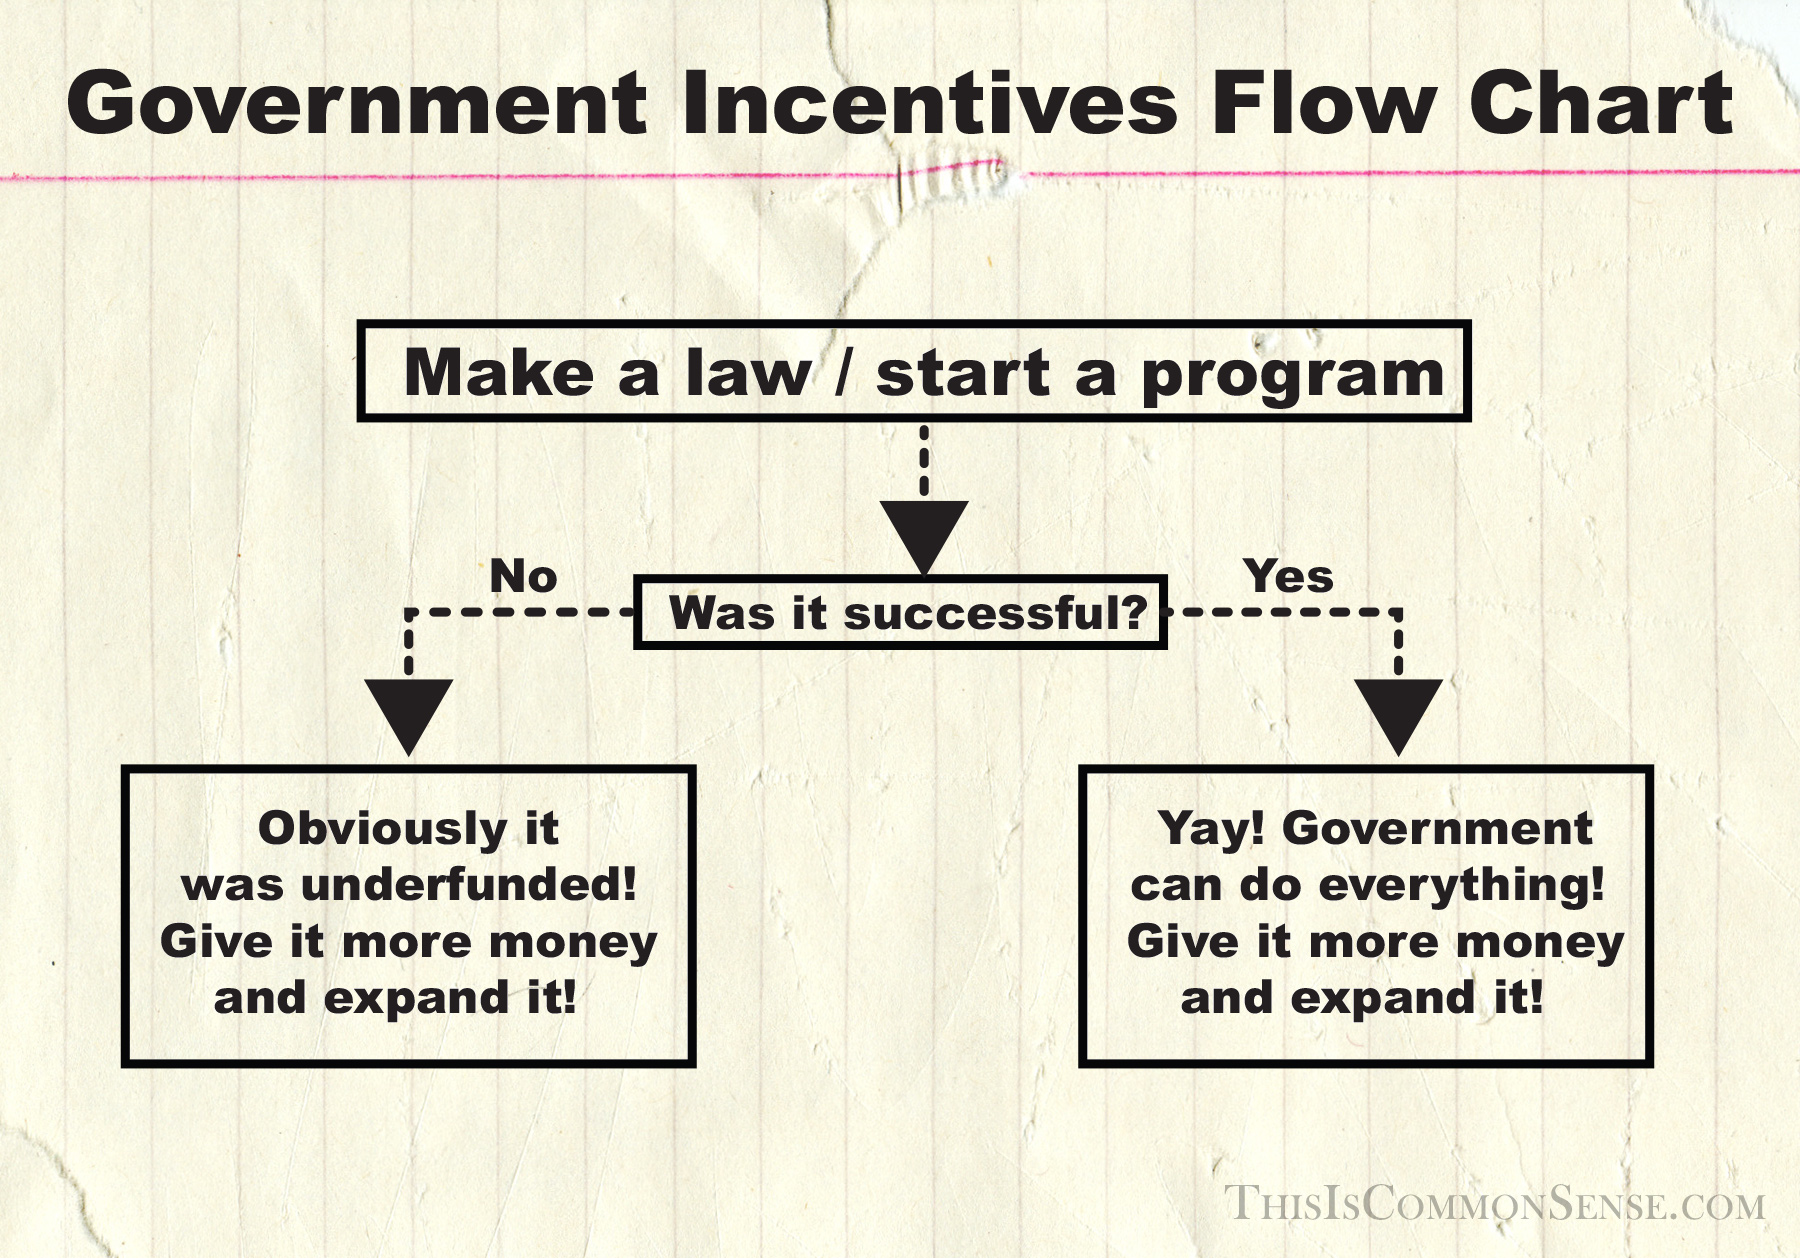 government, incentives, flow chart, folly, results, illustration, meme, Jim Gill, Paul Jacob, Common Sense